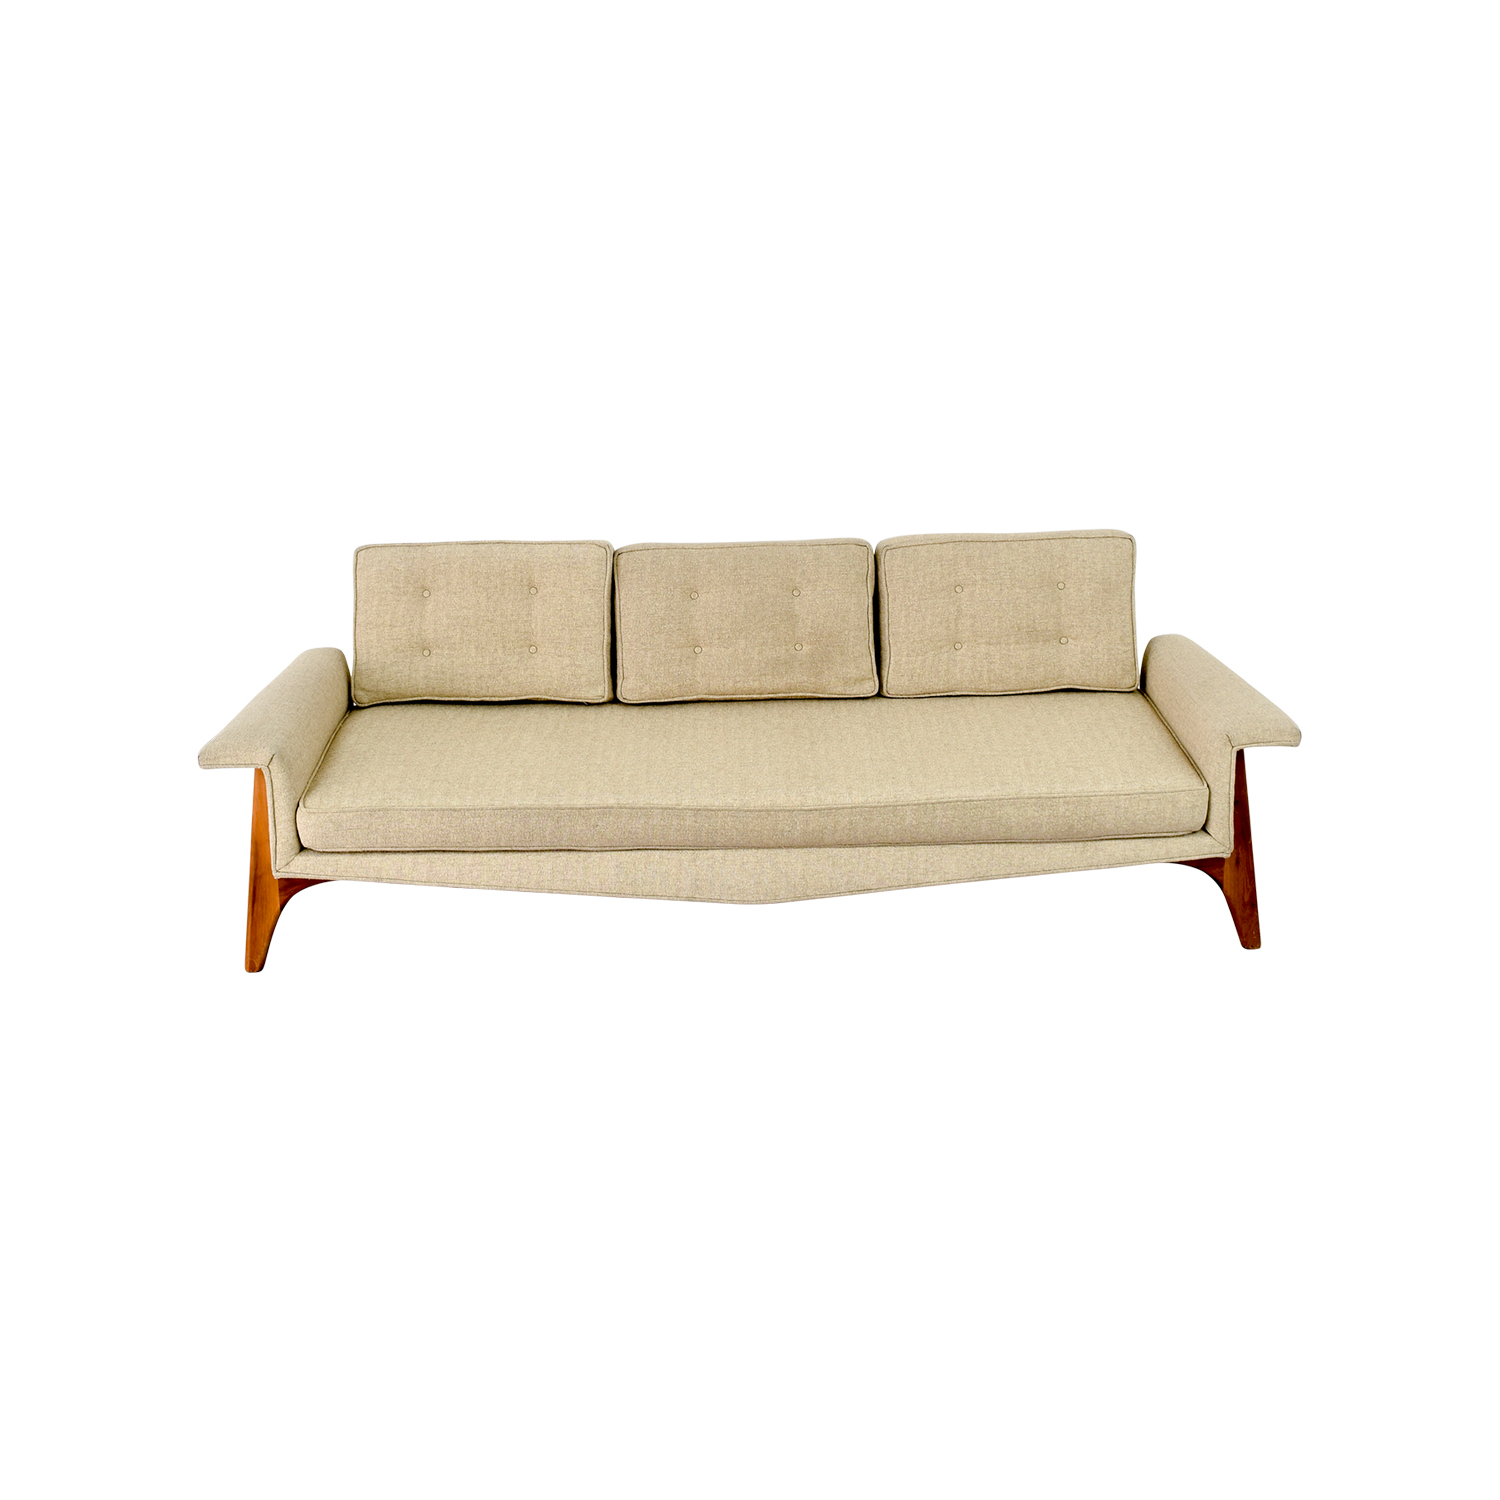 traditional sofa manufacturers uk craftsman style sofas used center ebay for